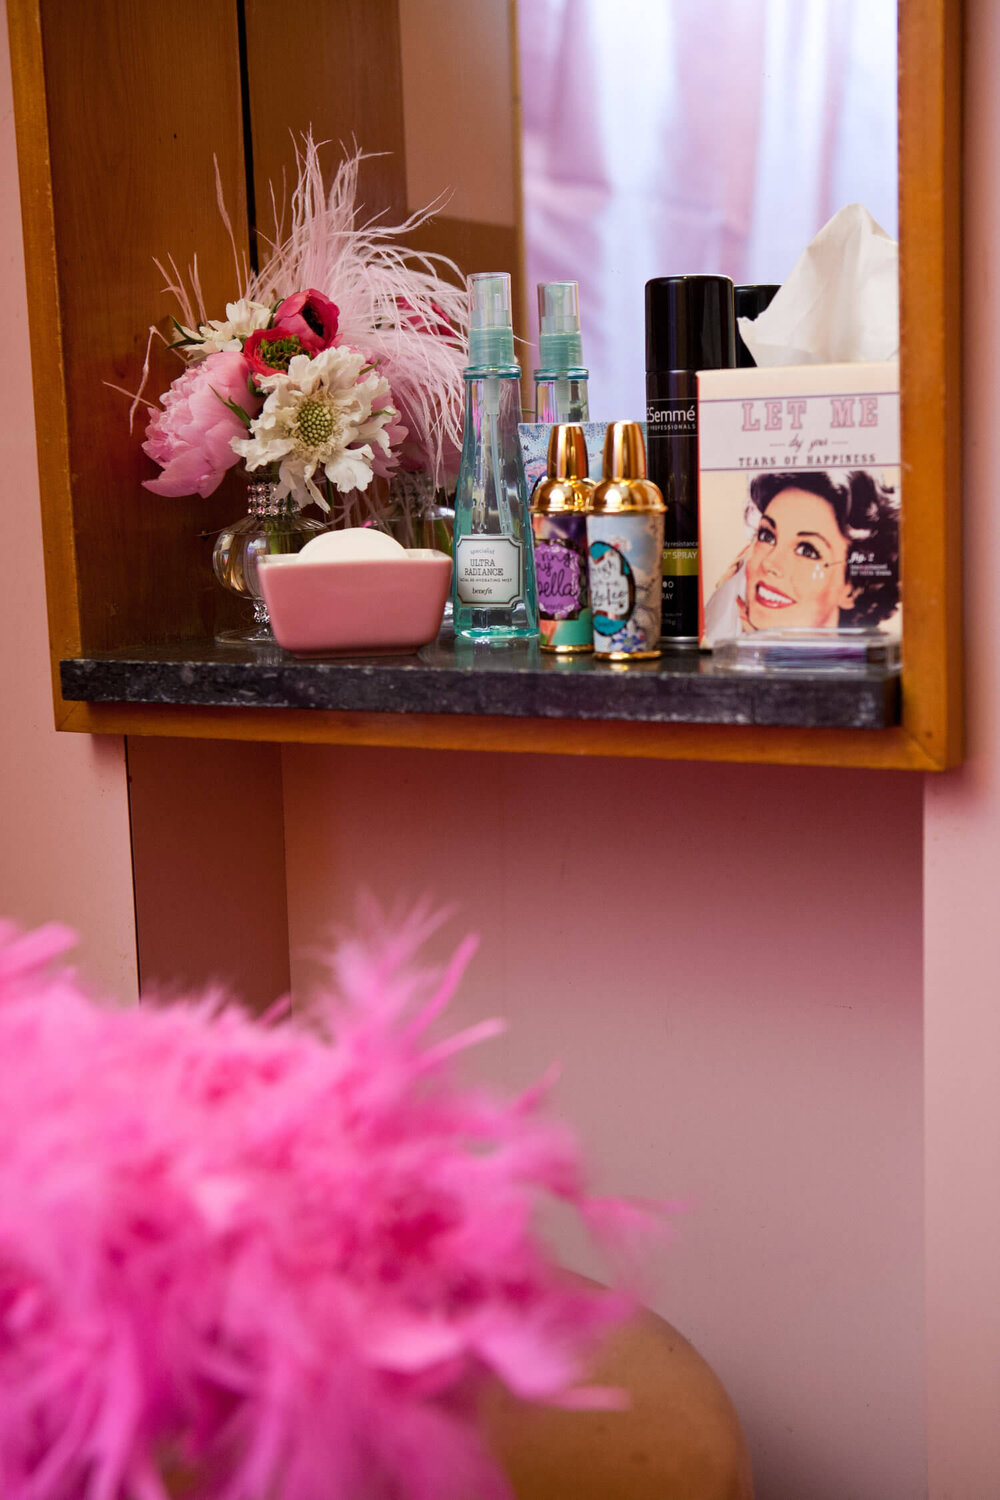 044_Benefit.Glamouriety-1756616843-O.jpg